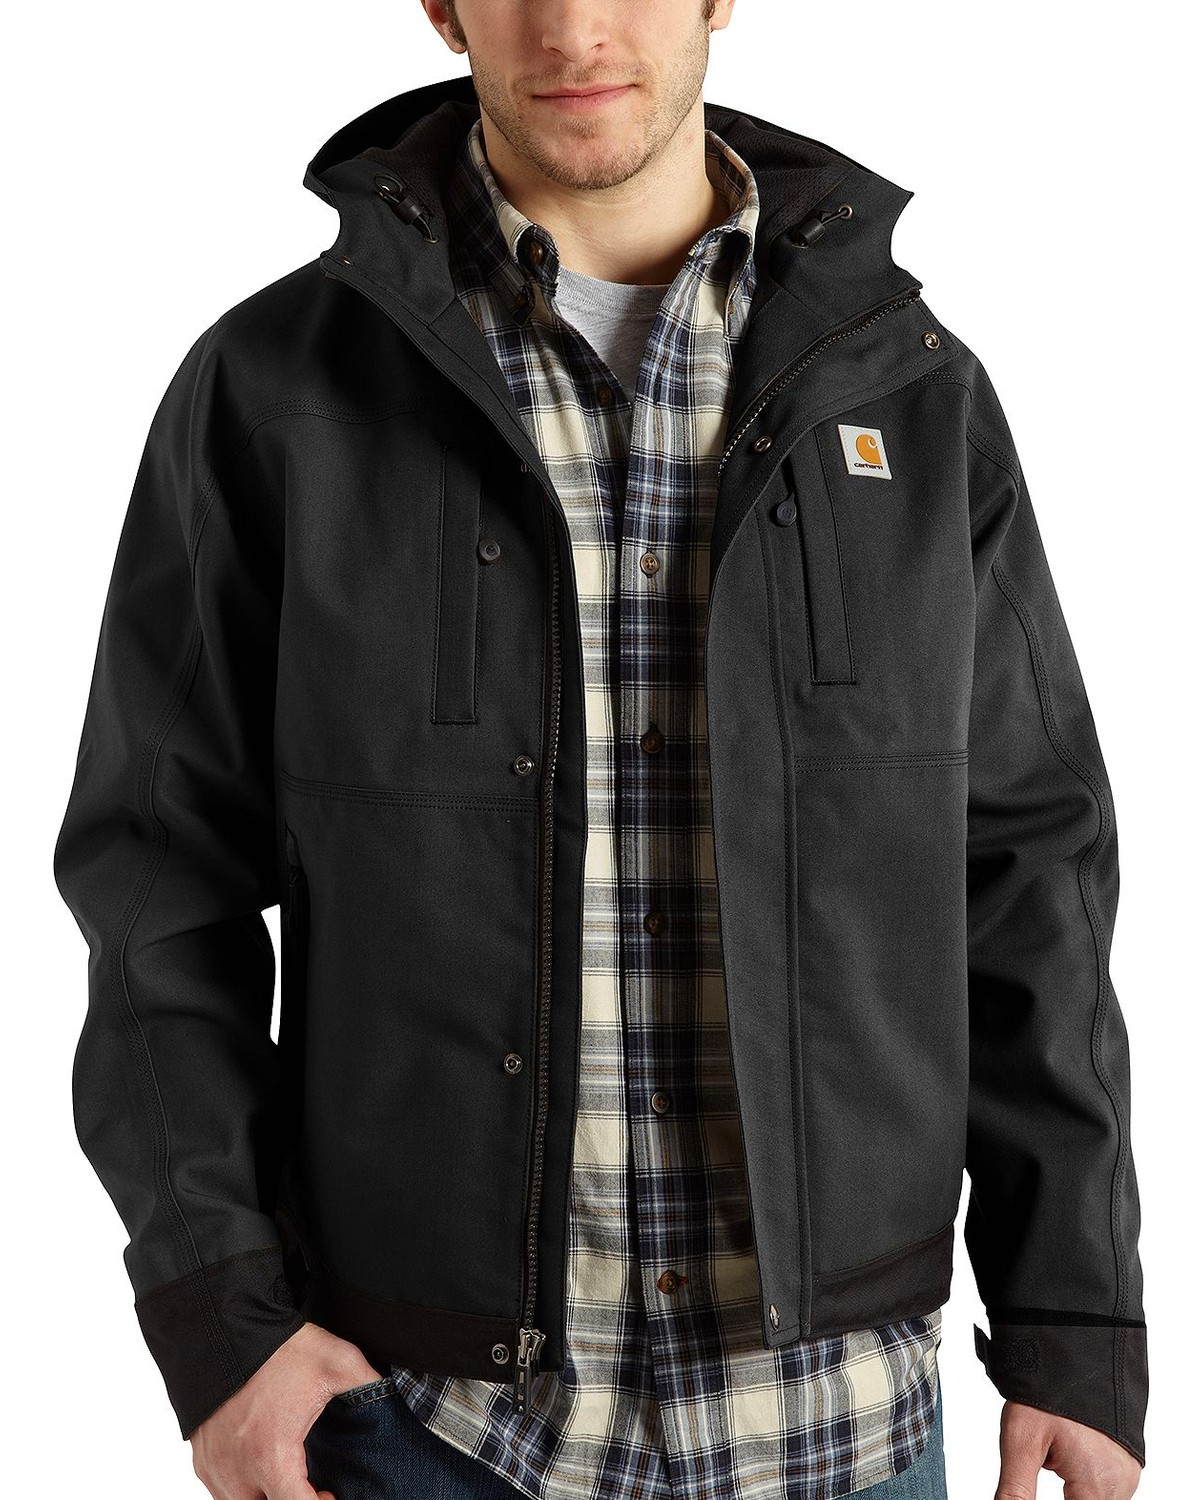 Carhartt jacket sale